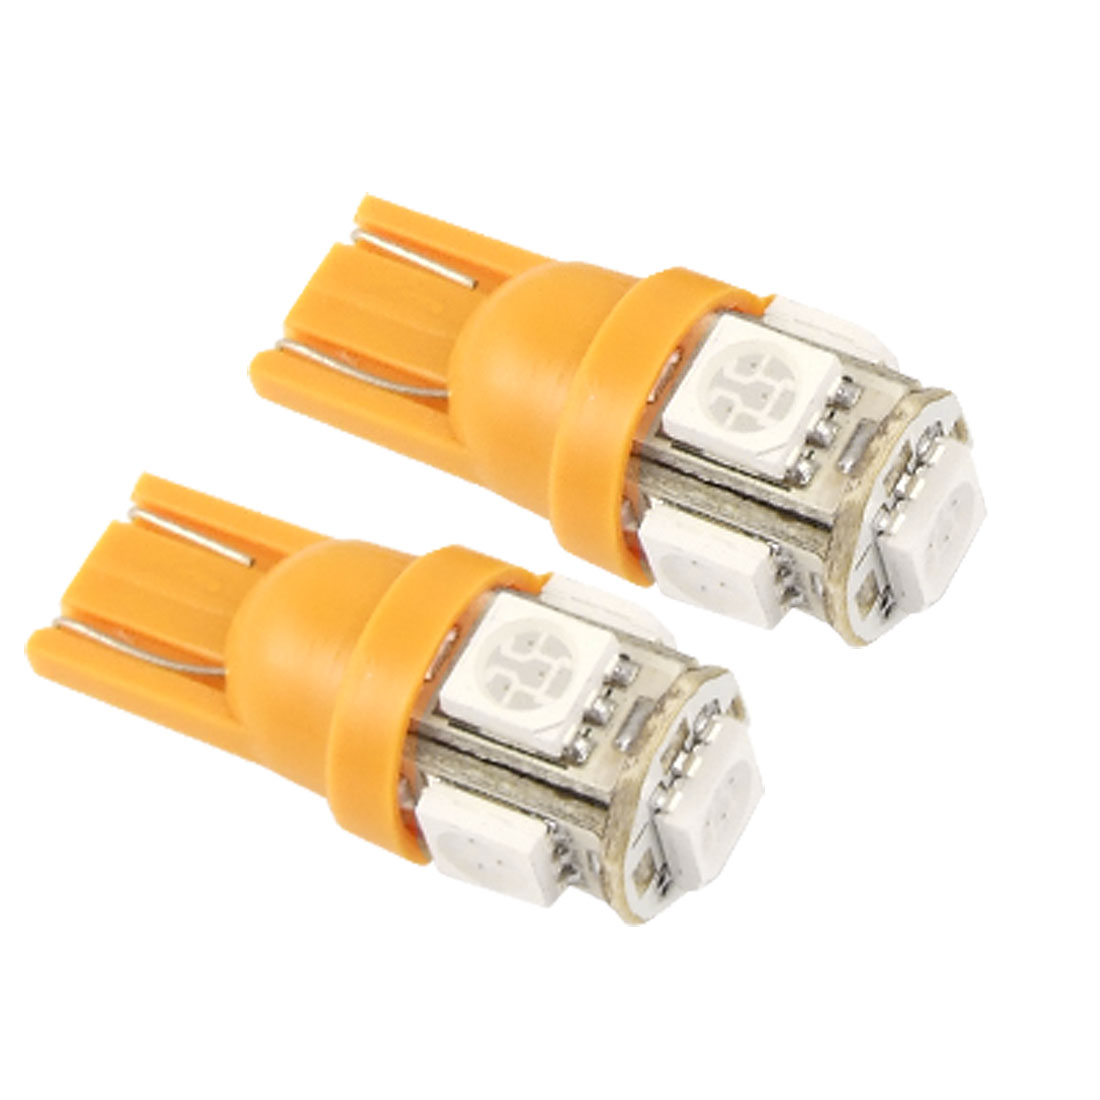 2 Pcs T10 W5W Orange 5 SMD LED Side Light Bulbs Replacement for Car